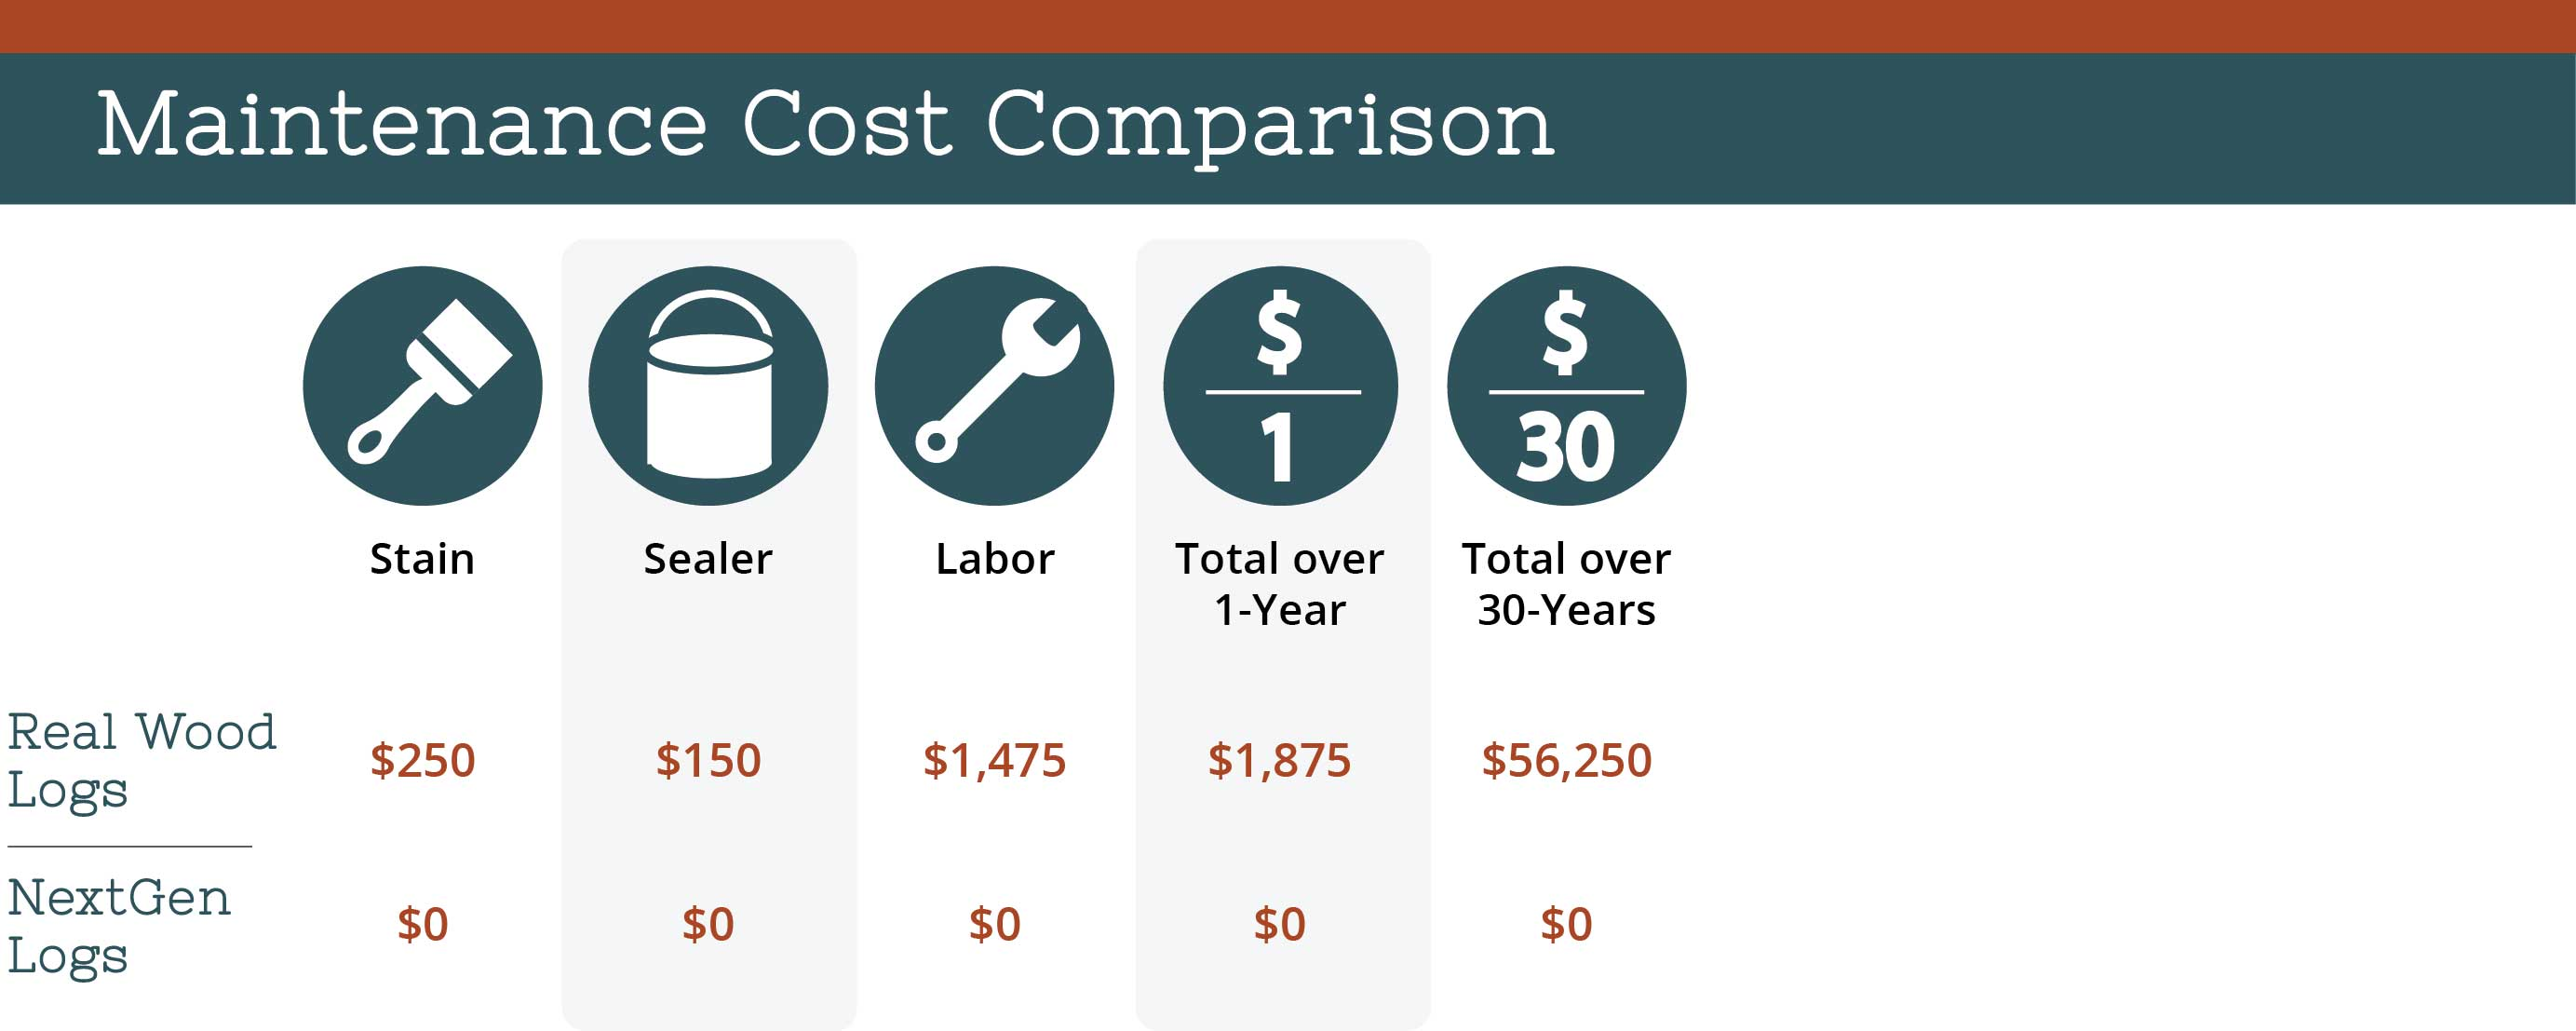 nextgen_logs_concrete_log_siding_maintenance_cost_comparison_chart